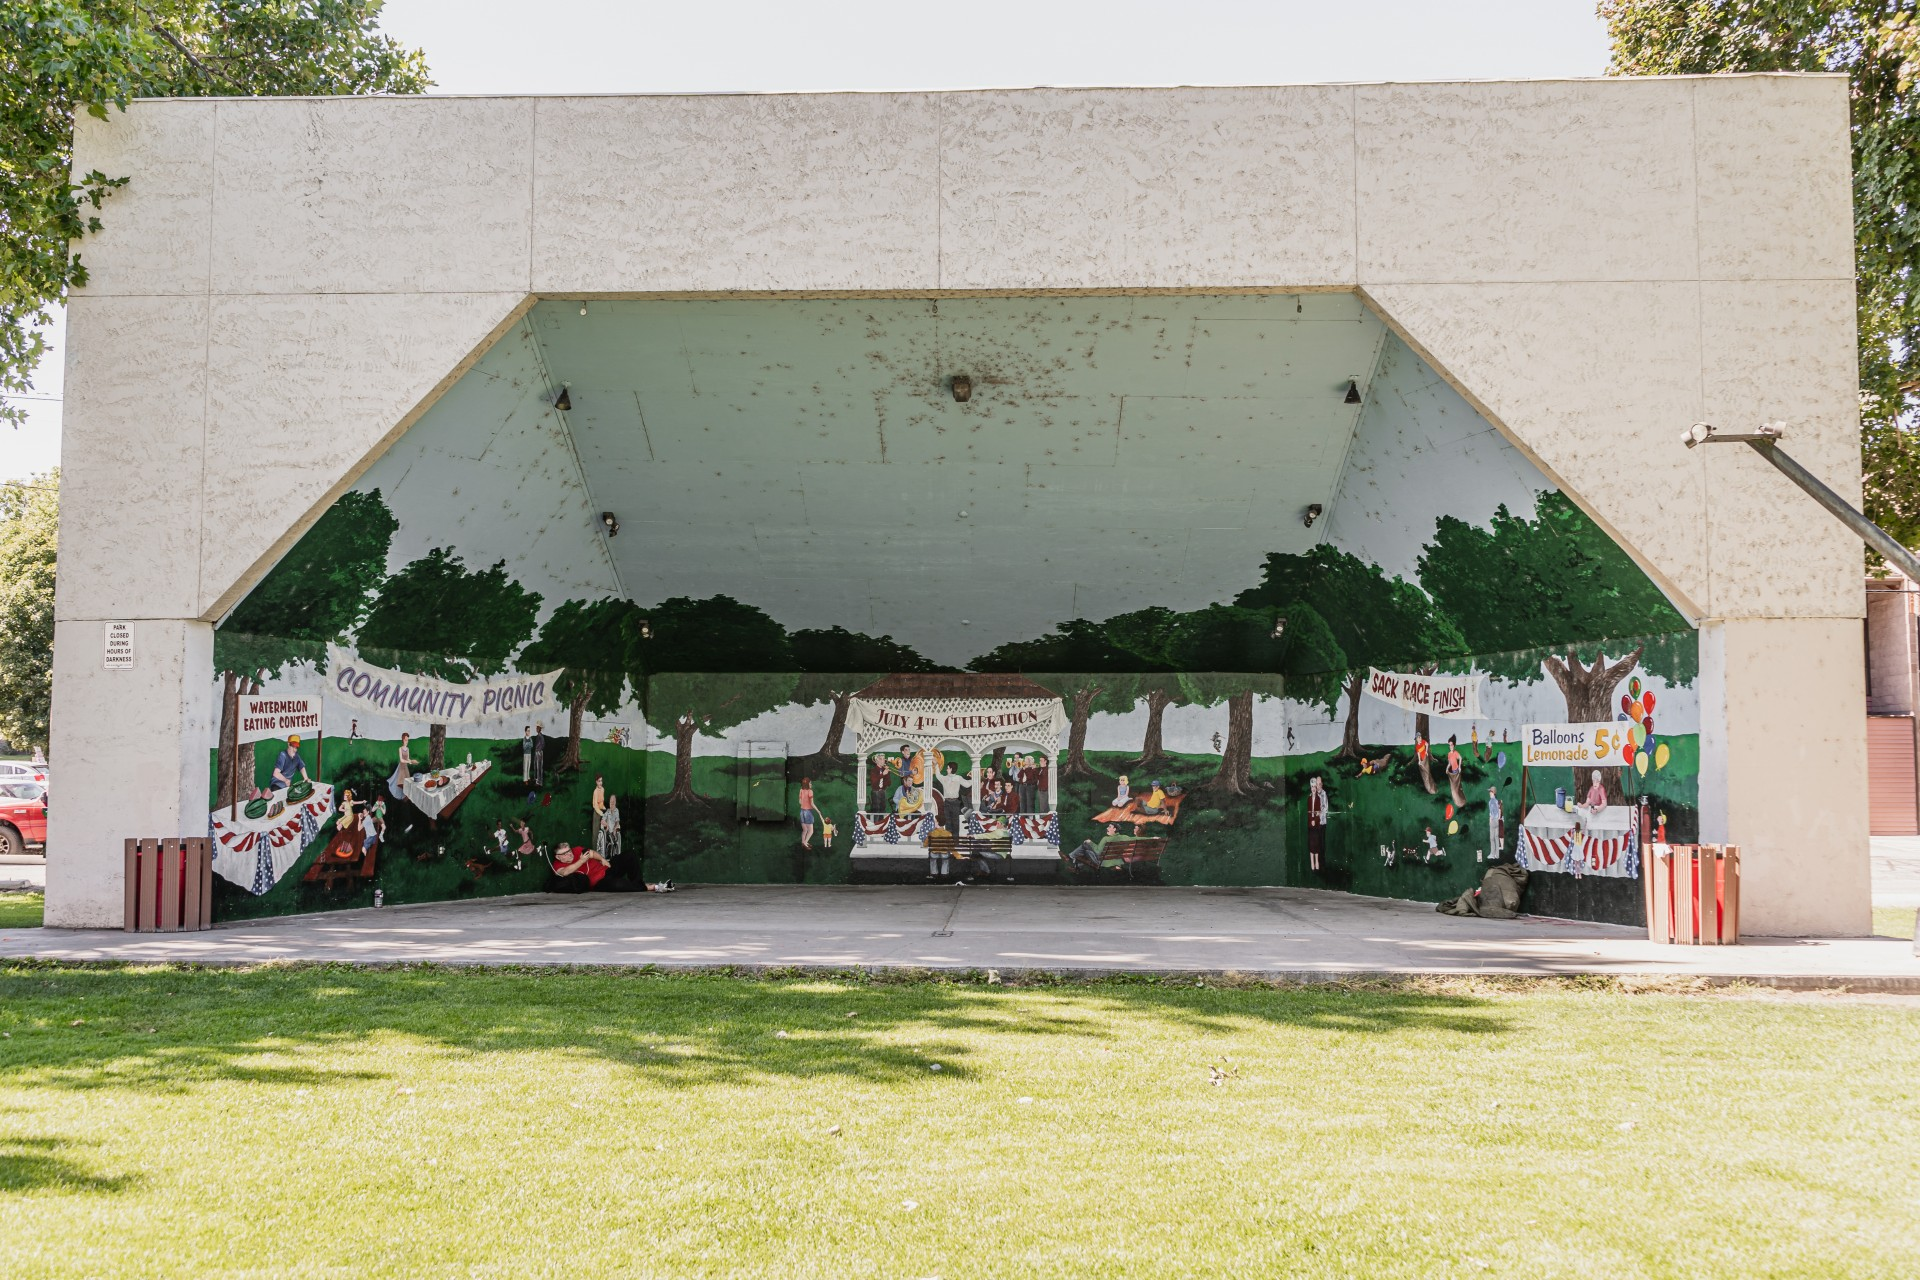 Civic League Park & Fourth of July Picnic Mural